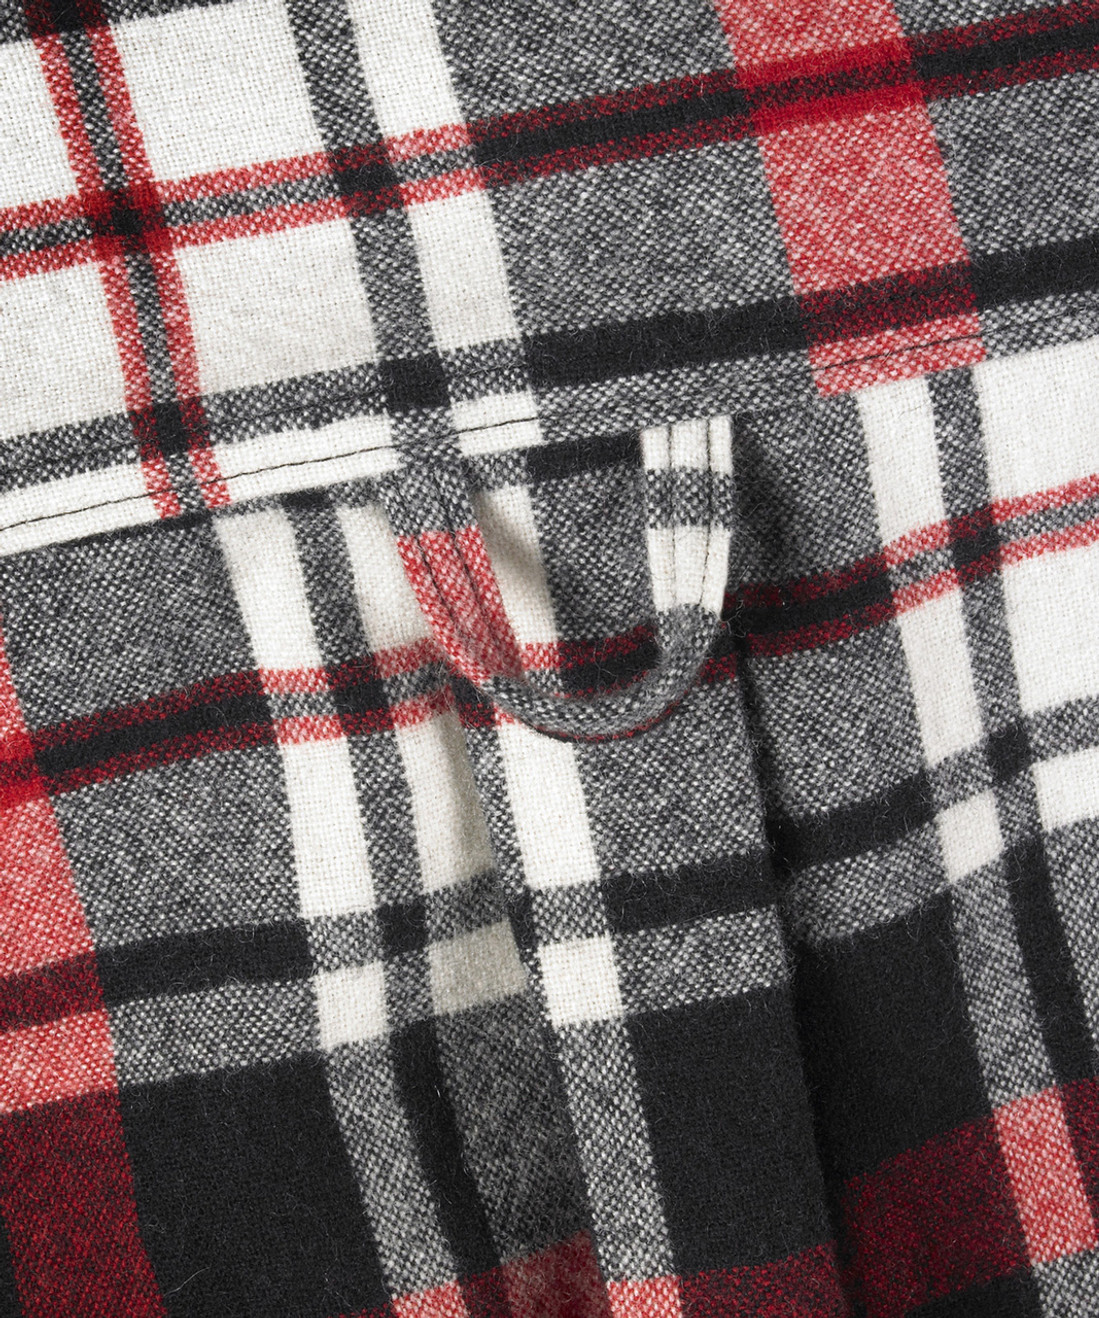 Men's Limited Edition Made in USA Wool Flannel Shirt - John Rich & Bros.